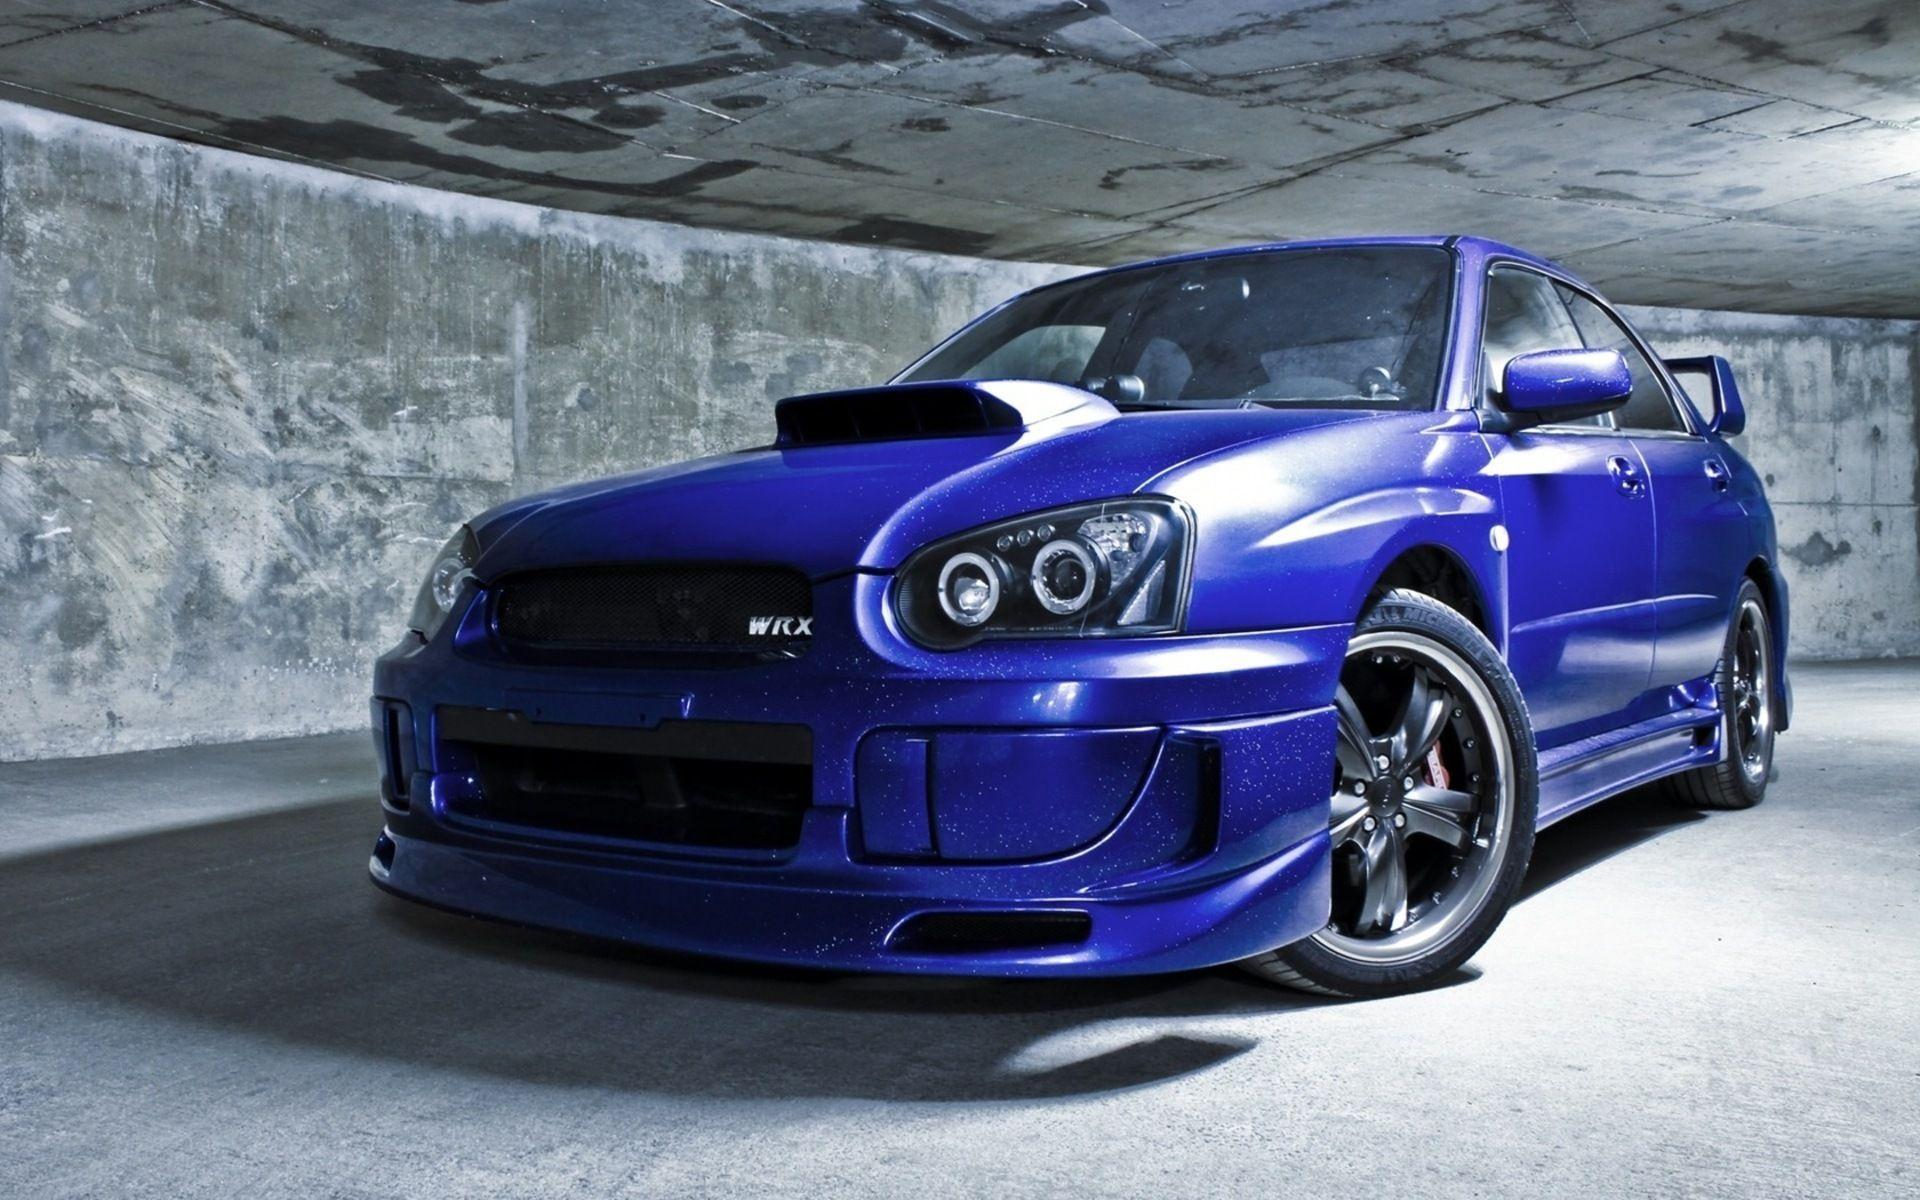 Subaru Wallpapers - Full HD wallpaper search